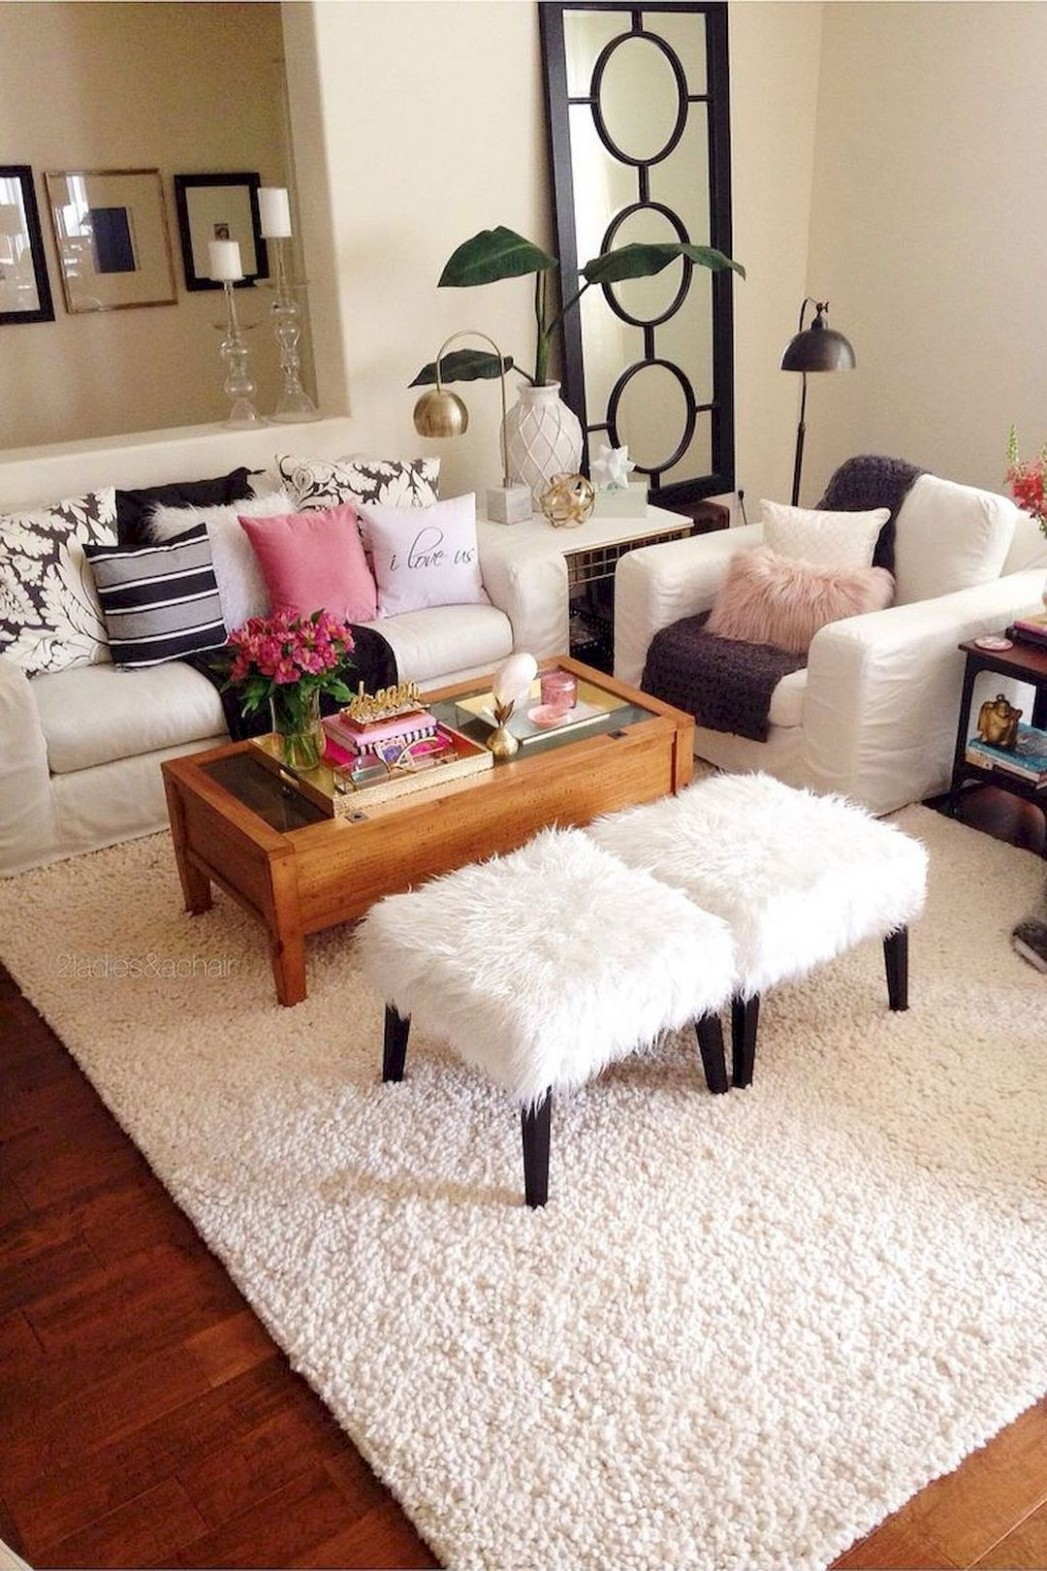 New Apartment Decorating Ideas On A Budget (10)  College  - New Apartment Decorating Ideas